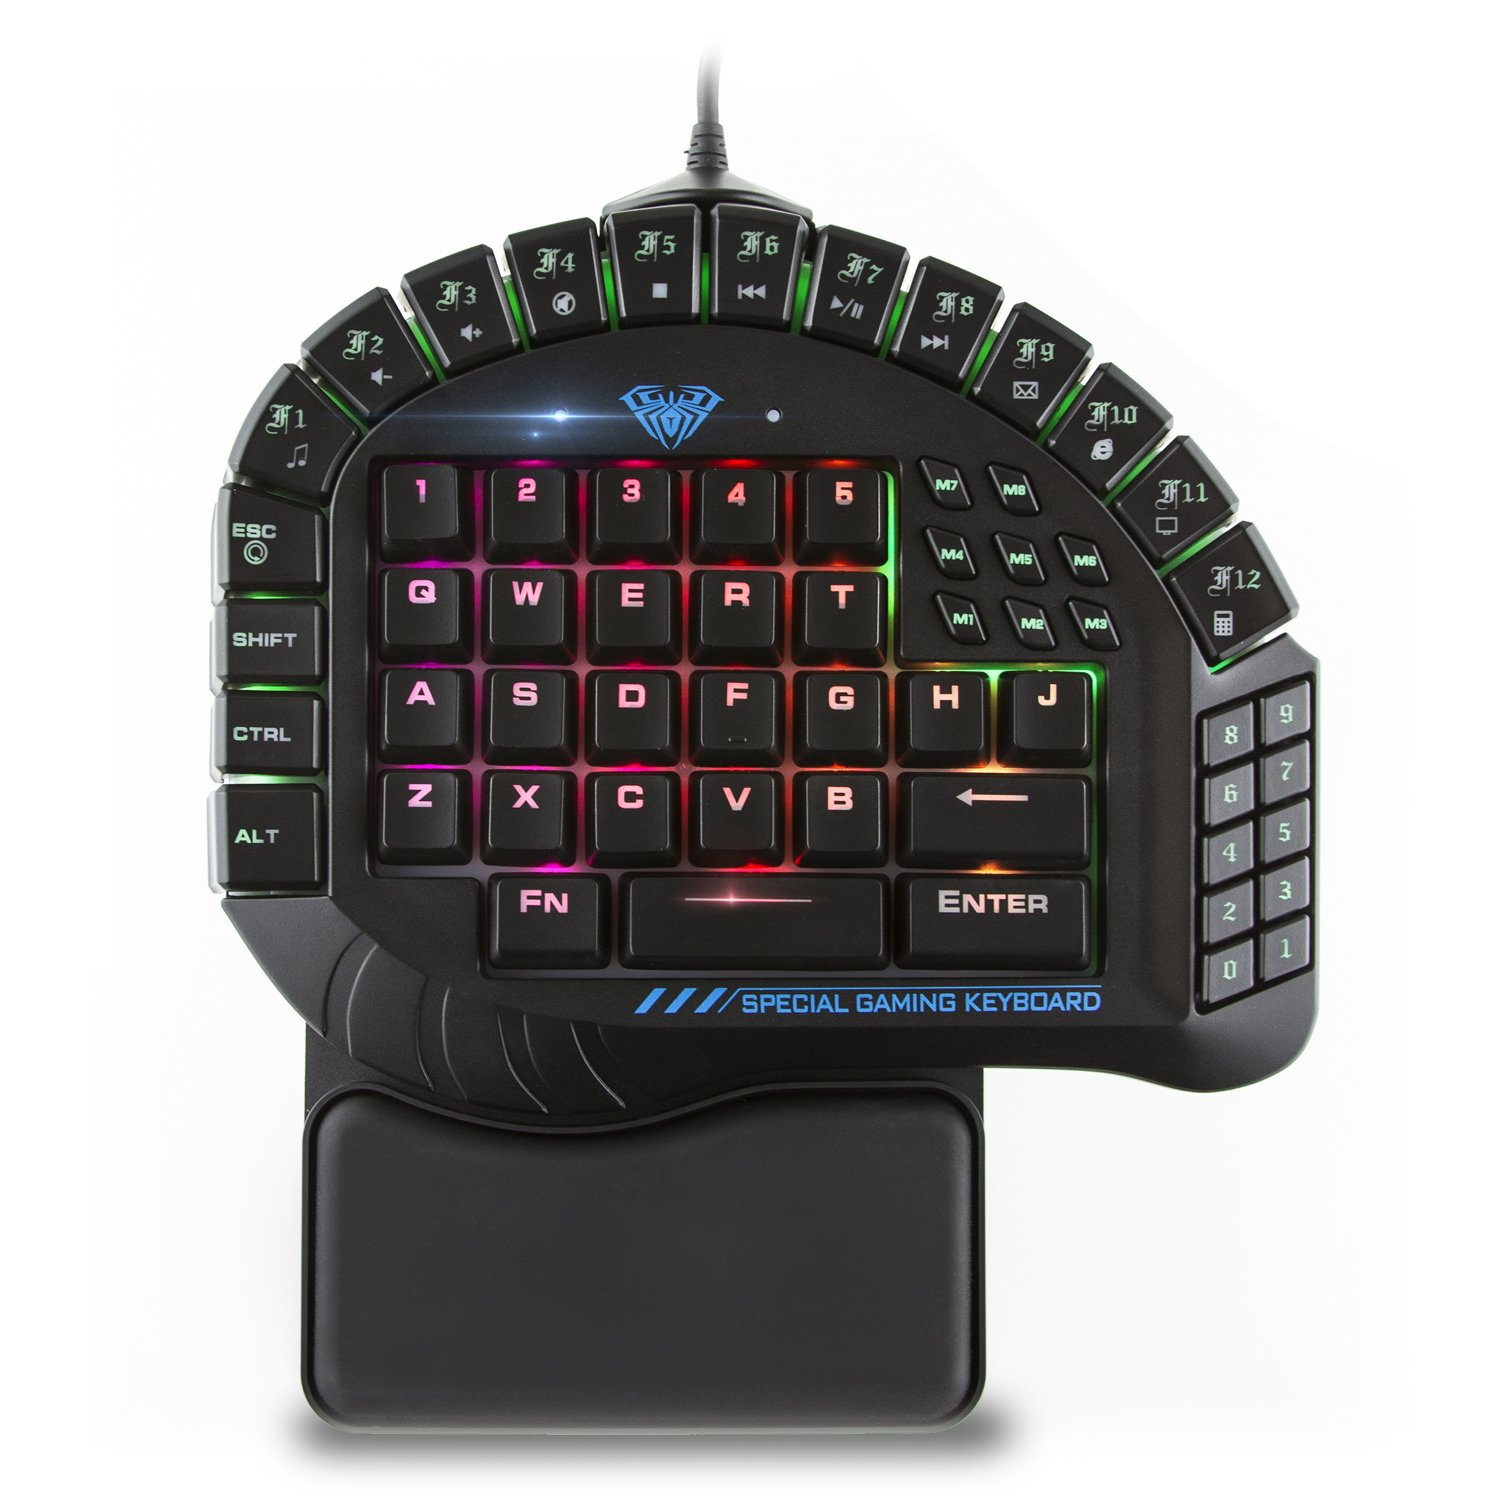 AULA 30 Progammable Keys One Handed Merchanical Gaming Keyboard – RGB Backlit Gaming Keypad, Green Switches One-Hand Keyboard with Detachable Wrist Rest